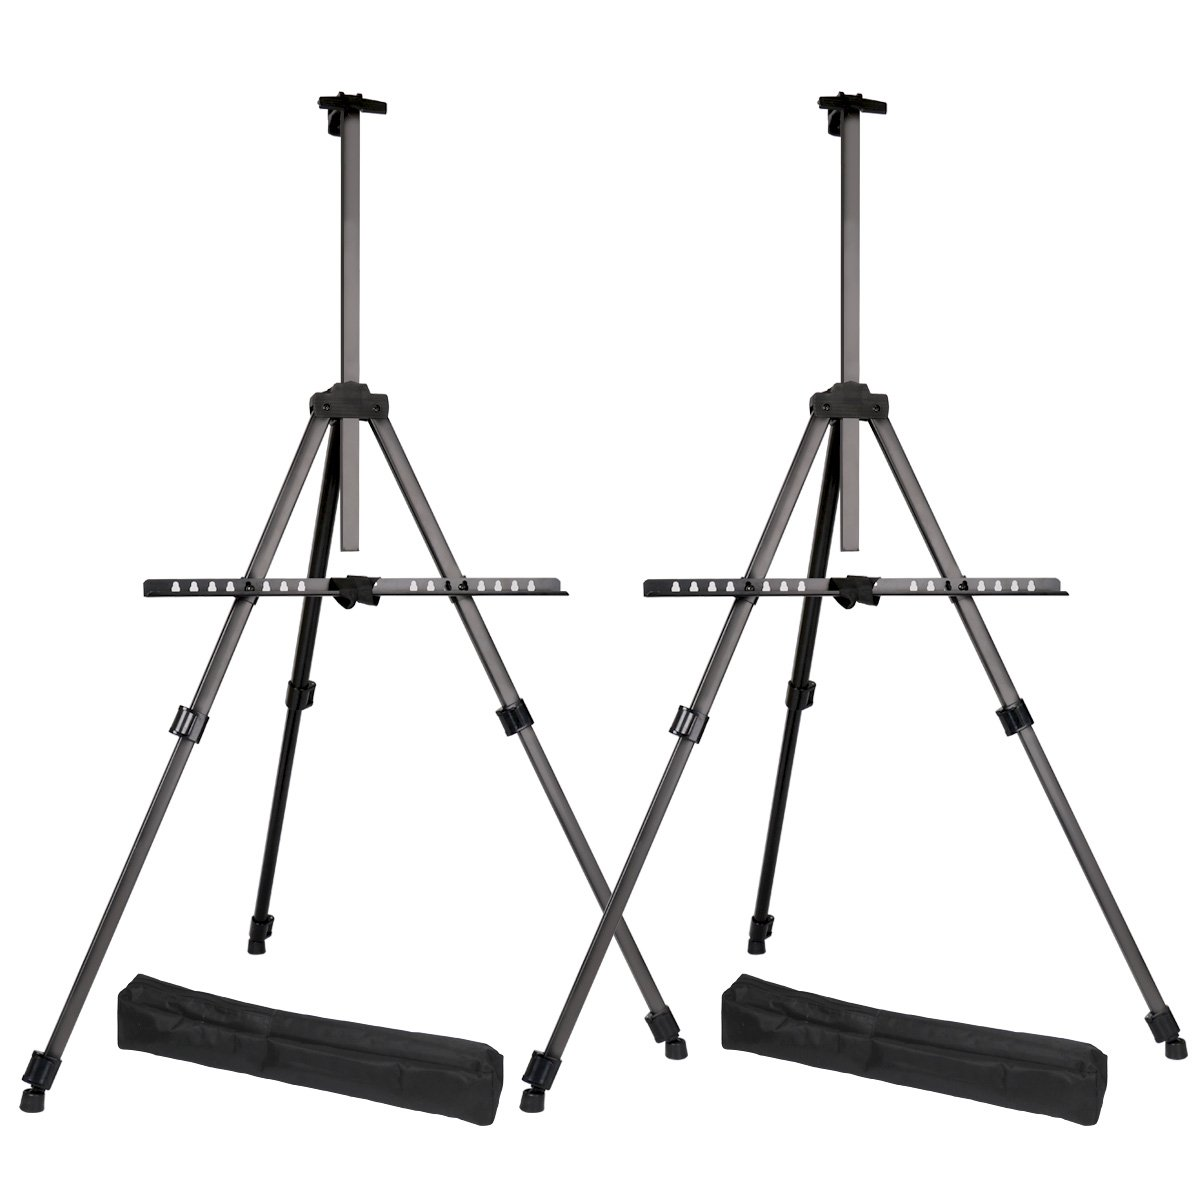 Transon Tripod Aluminum Table Top and Floor Easel Stand 65'' Lightweight Adjustable 2-Pack with Portable Bag (Black)